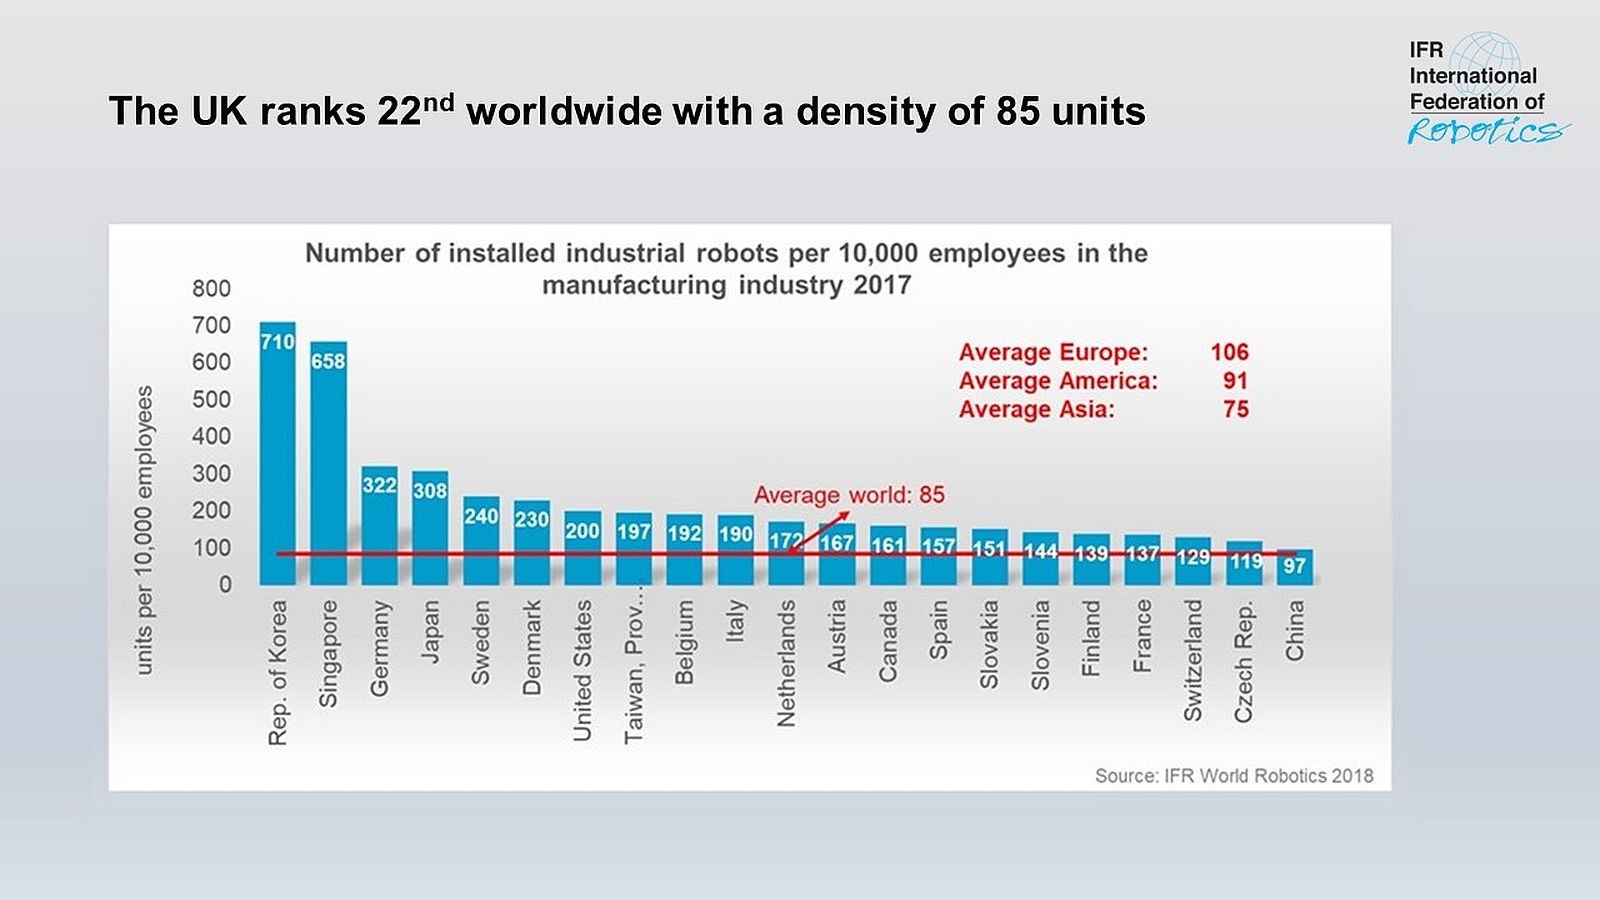 Robot density rises globally - International Federation of Robotics